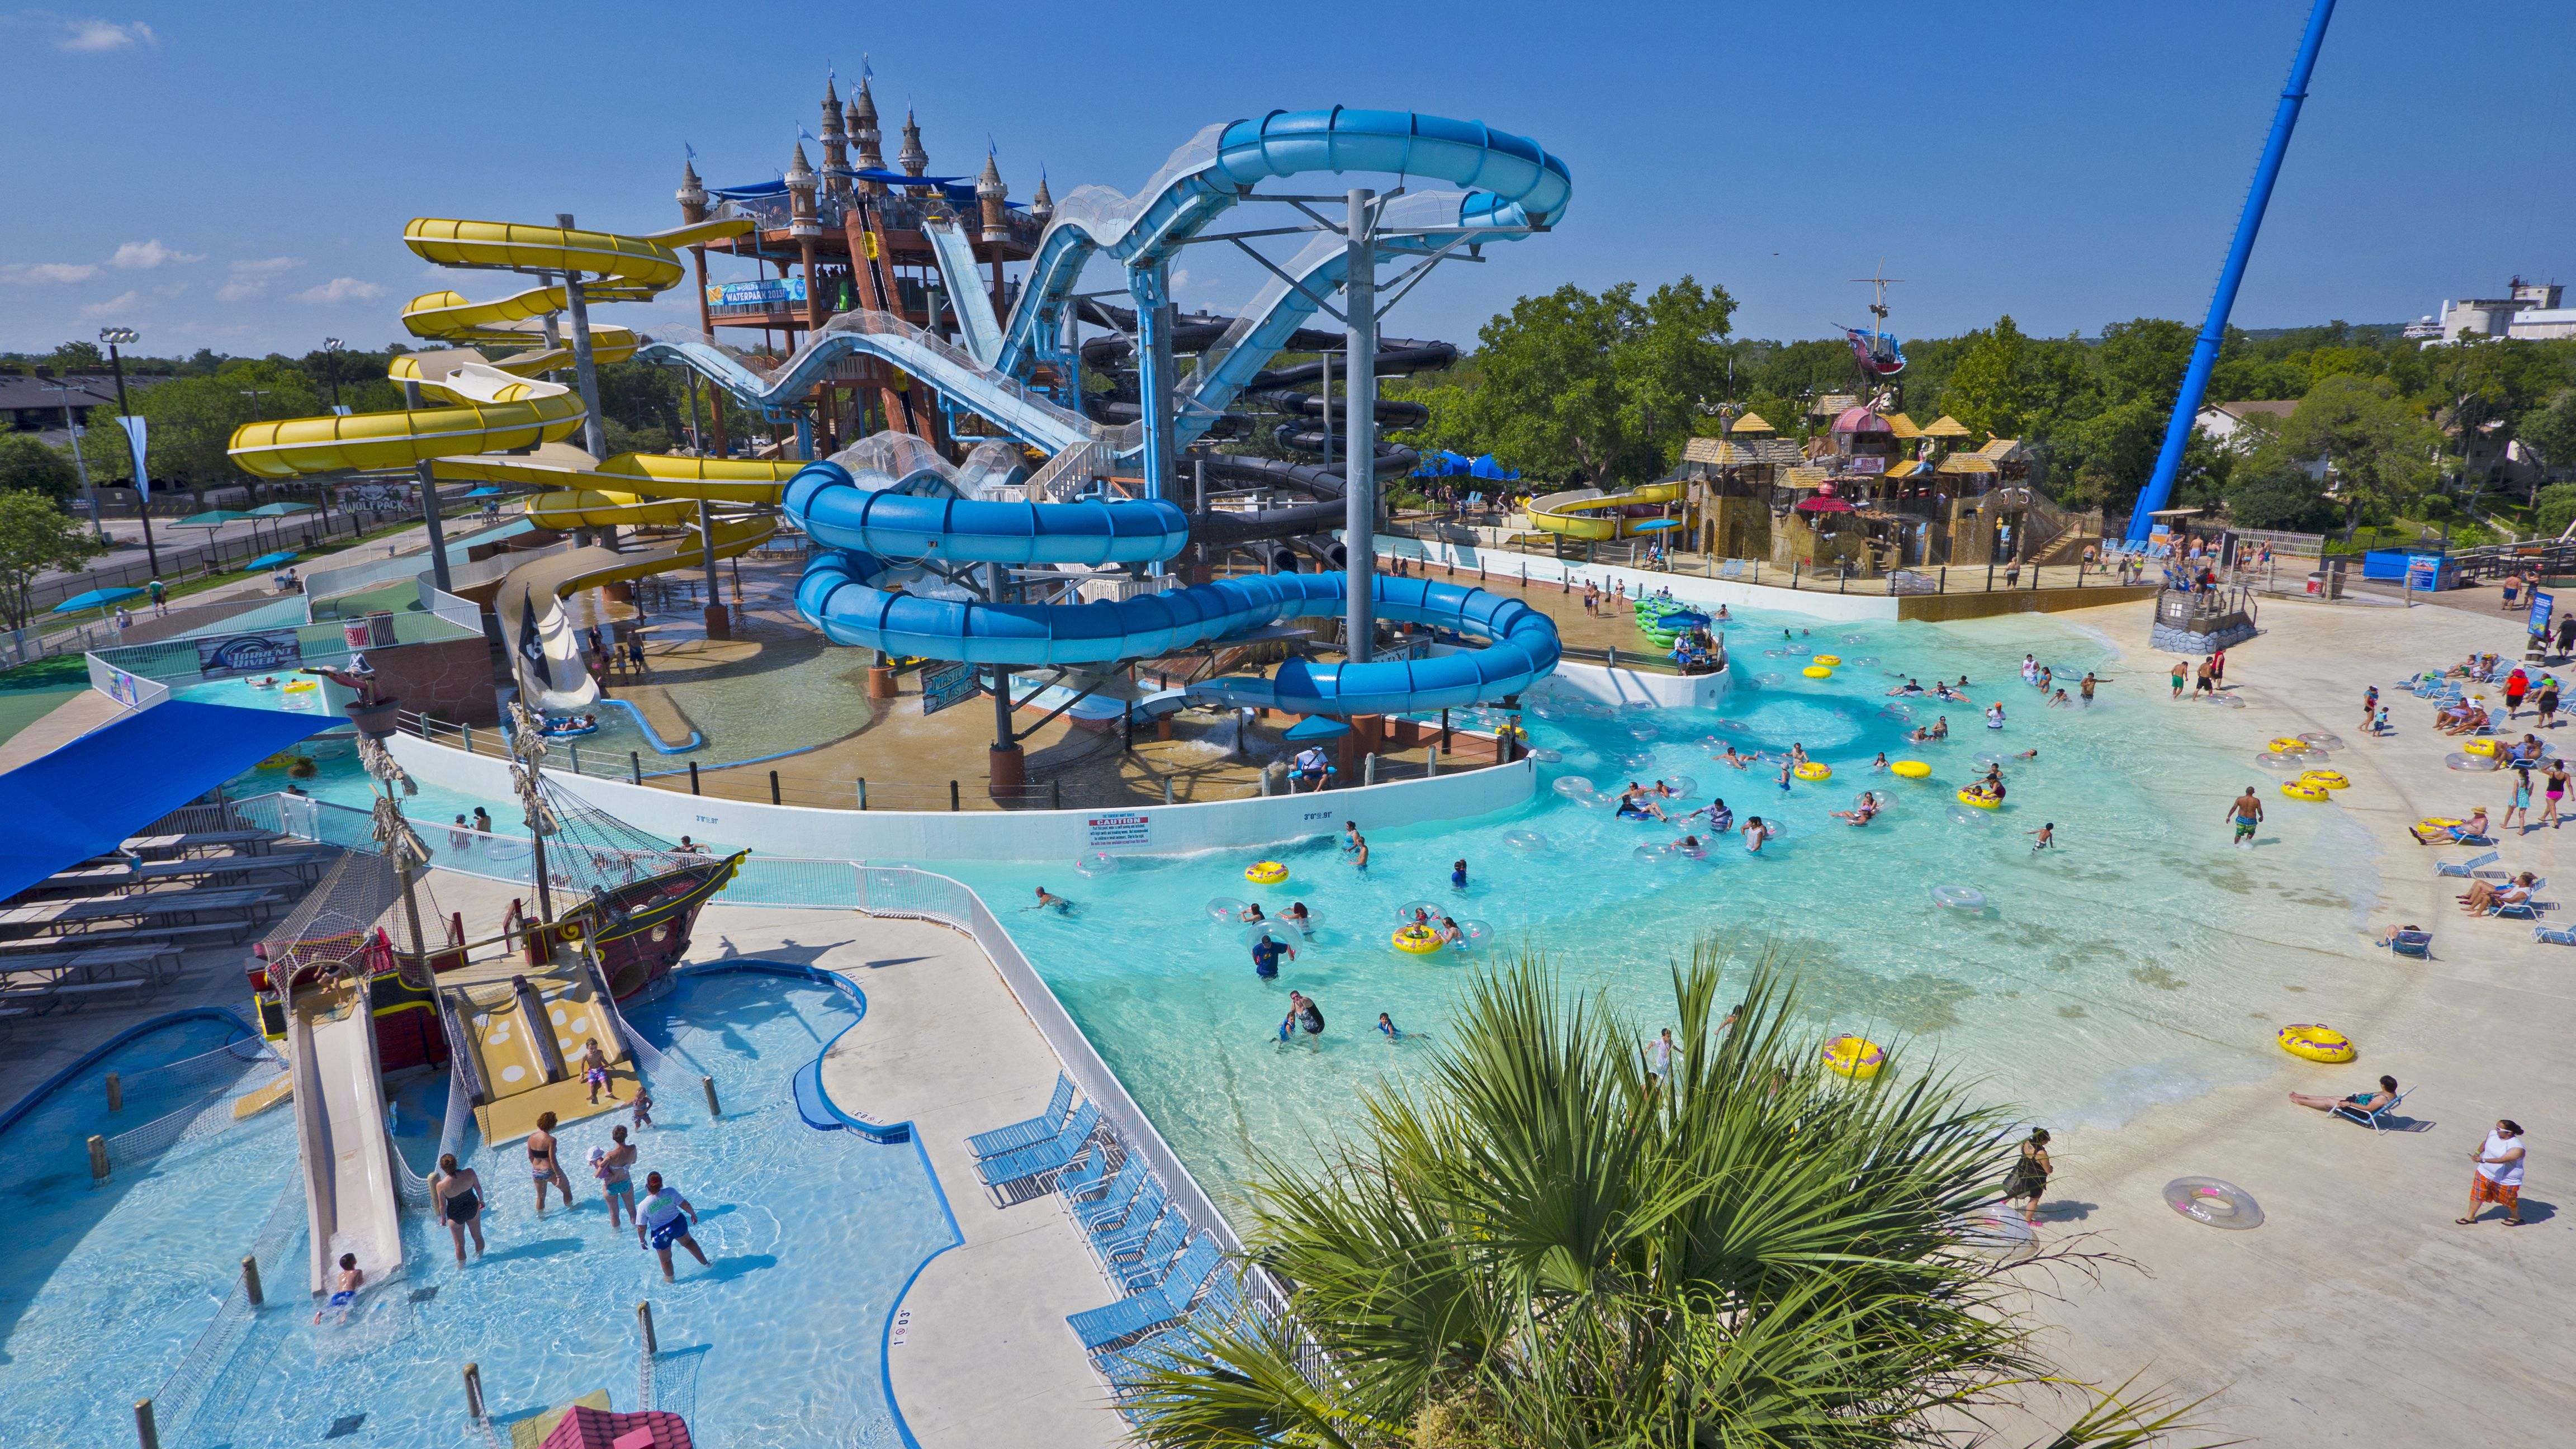 High angle view of water slides, pirate ship kid area, and wading pool